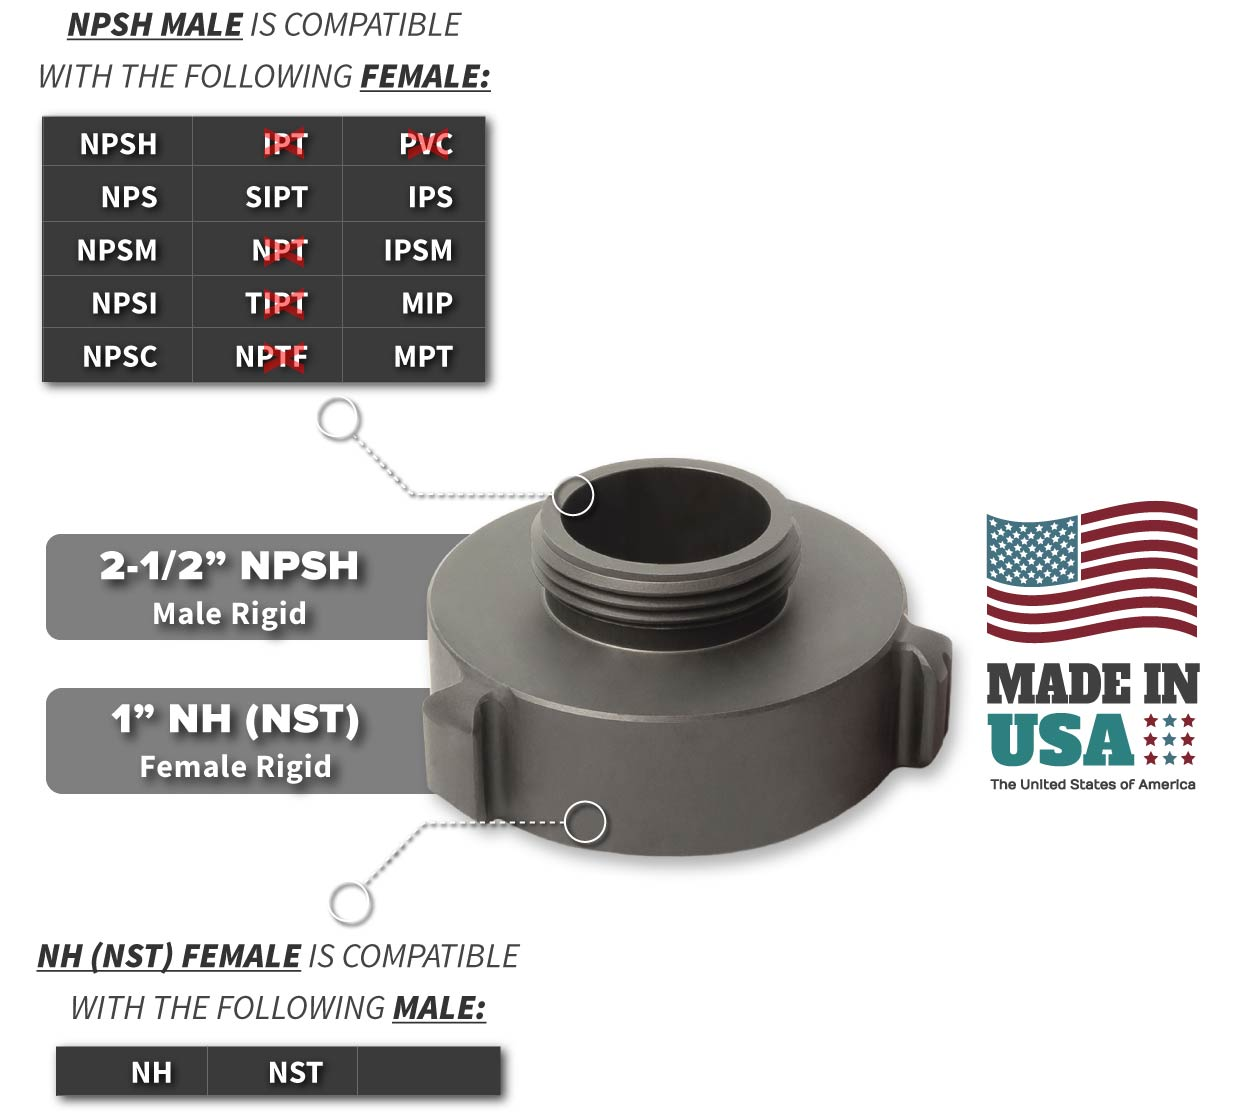 1 Inch NH-NST Female x 2.5 Inch NPSH Male Compatibility Thread Chart